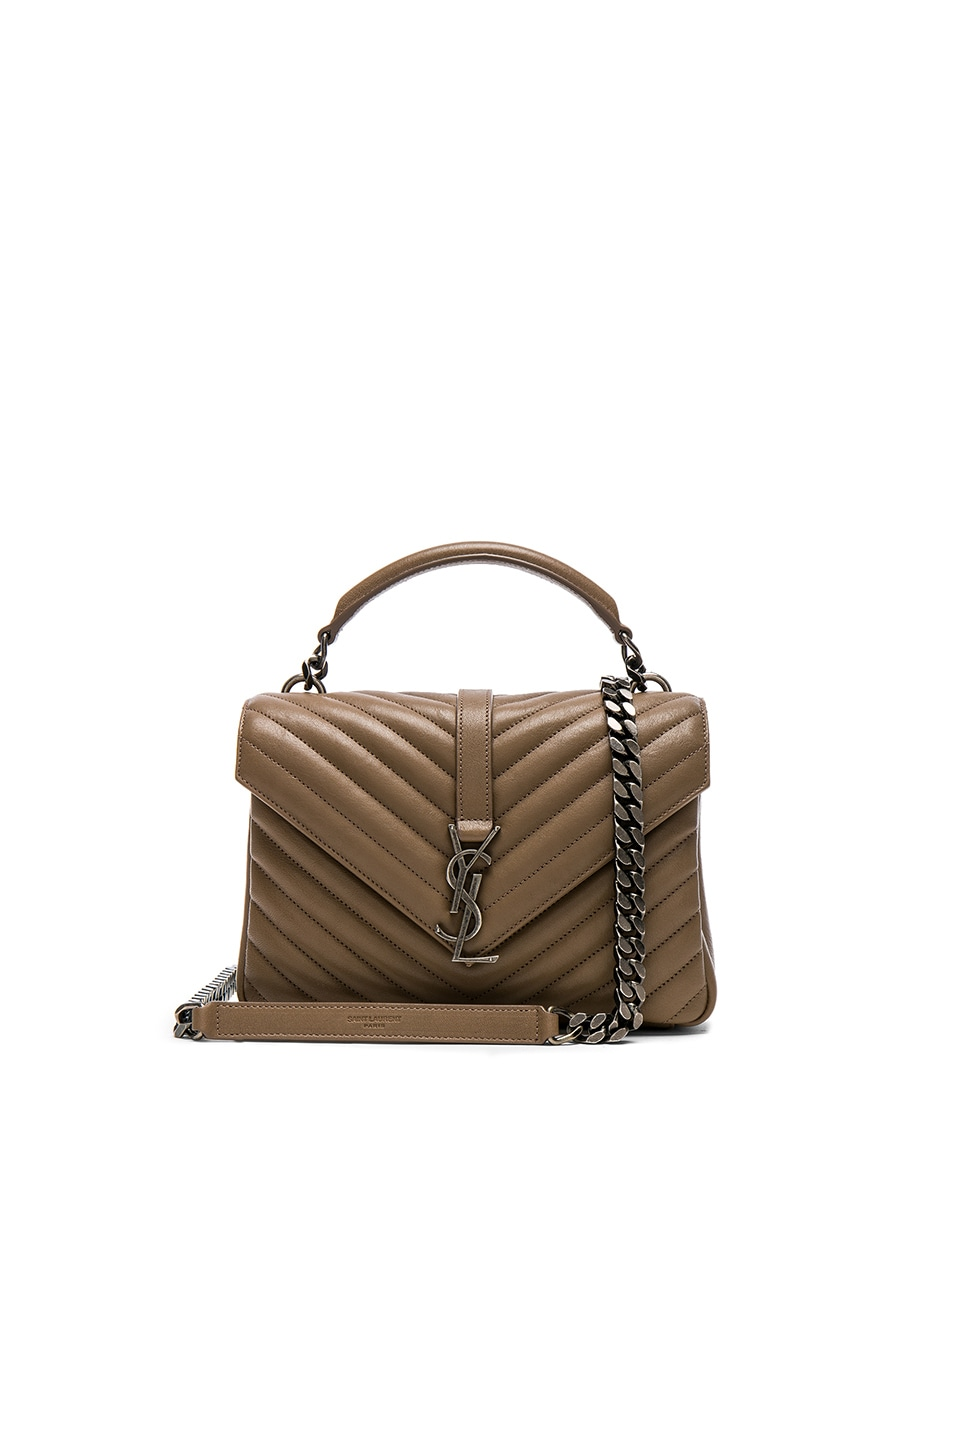 Image 1 of Saint Laurent Medium Monogramme College Bag in Taupe